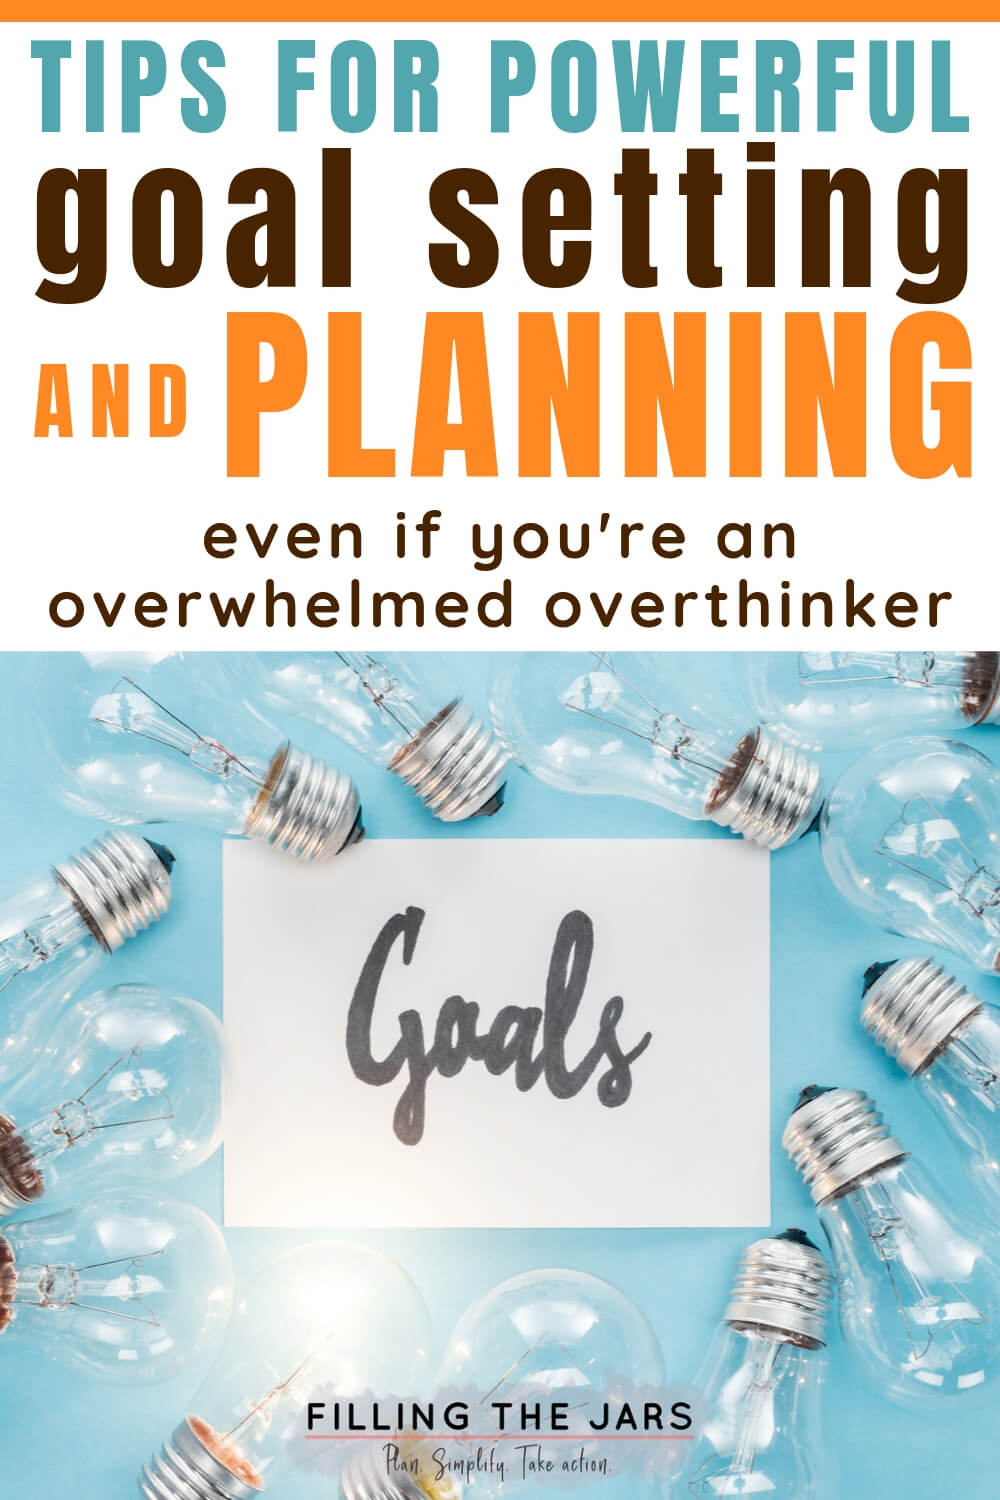 lightbulbs and goals paper on blue background with text tips for goal setting and planning